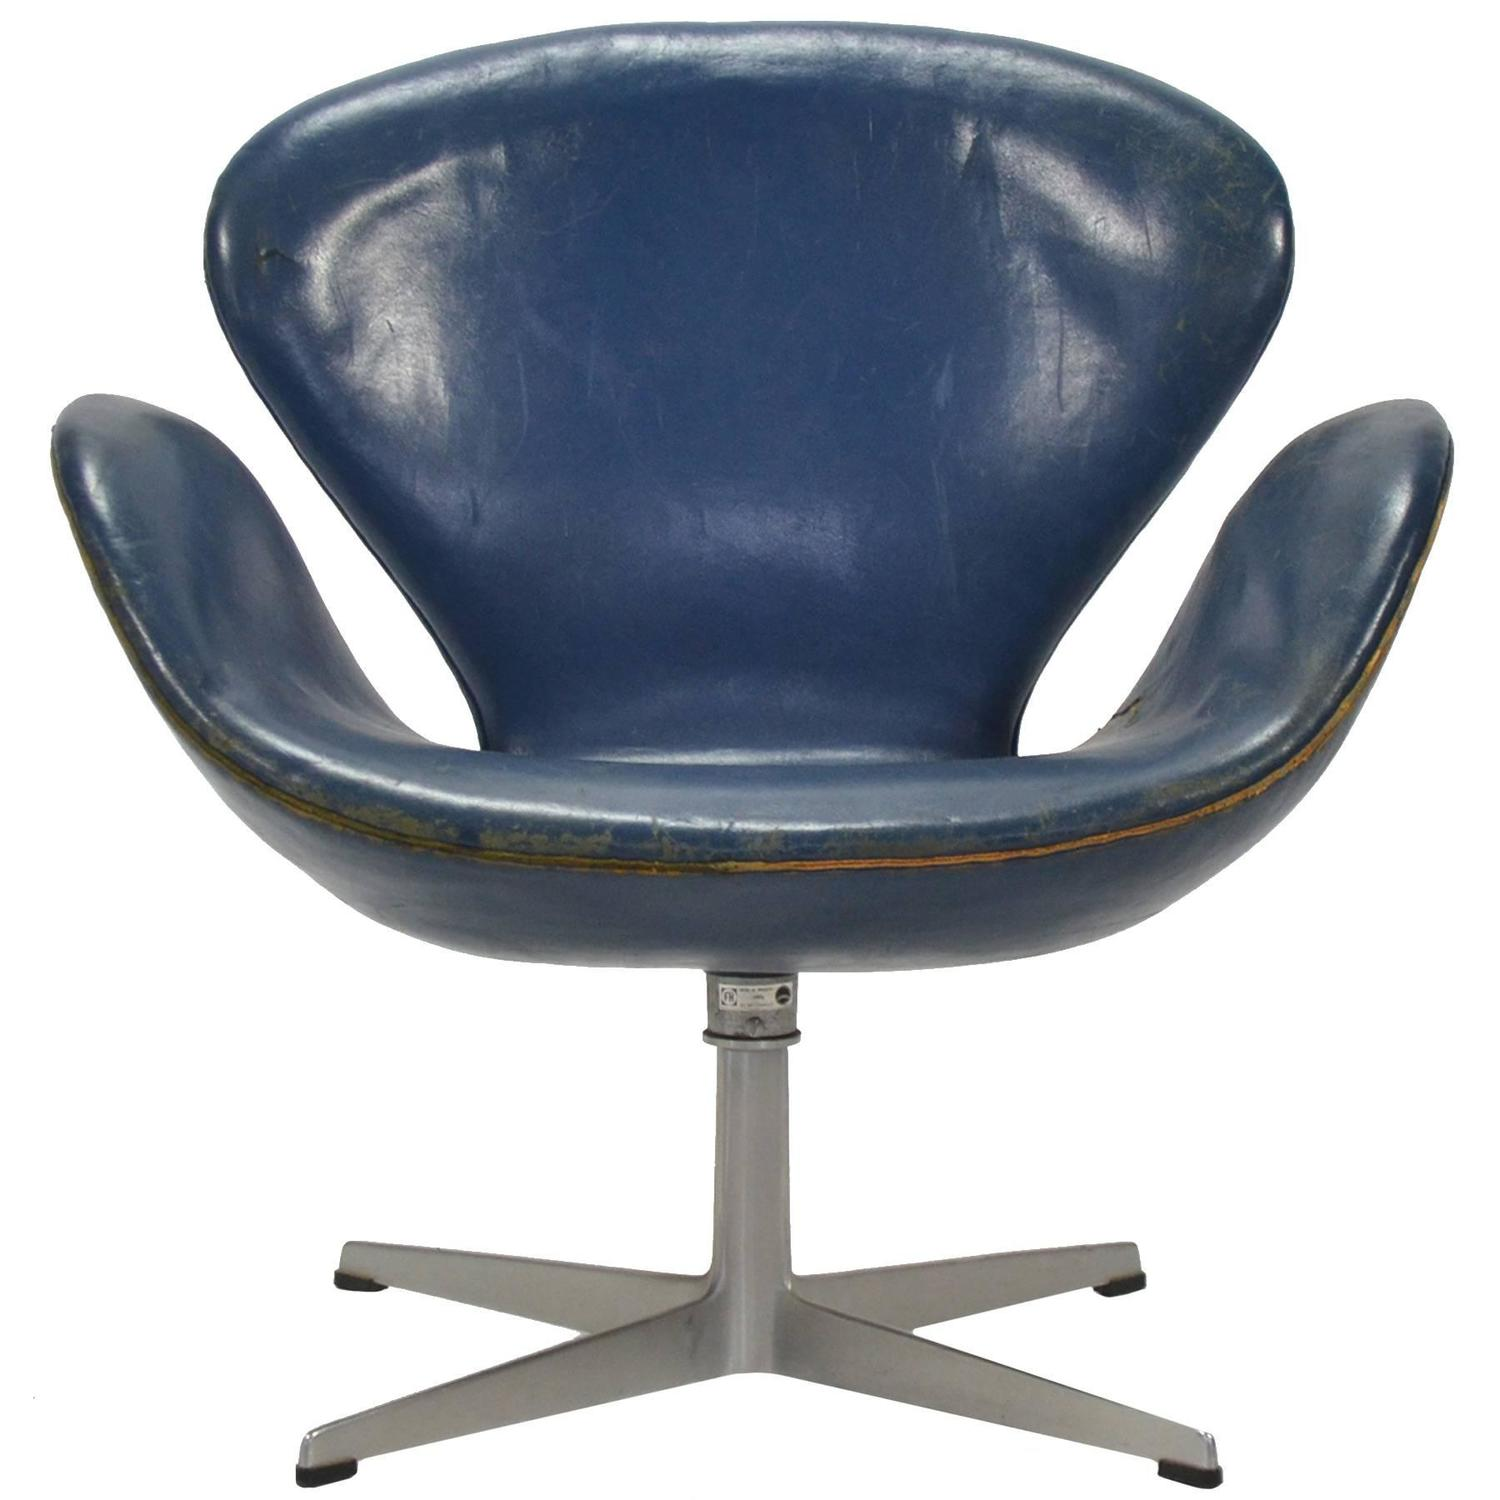 Arne jacobsen egg chair leather - Arne Jacobsen Swan Chair In Original Blue Leather By Fritz Hansen